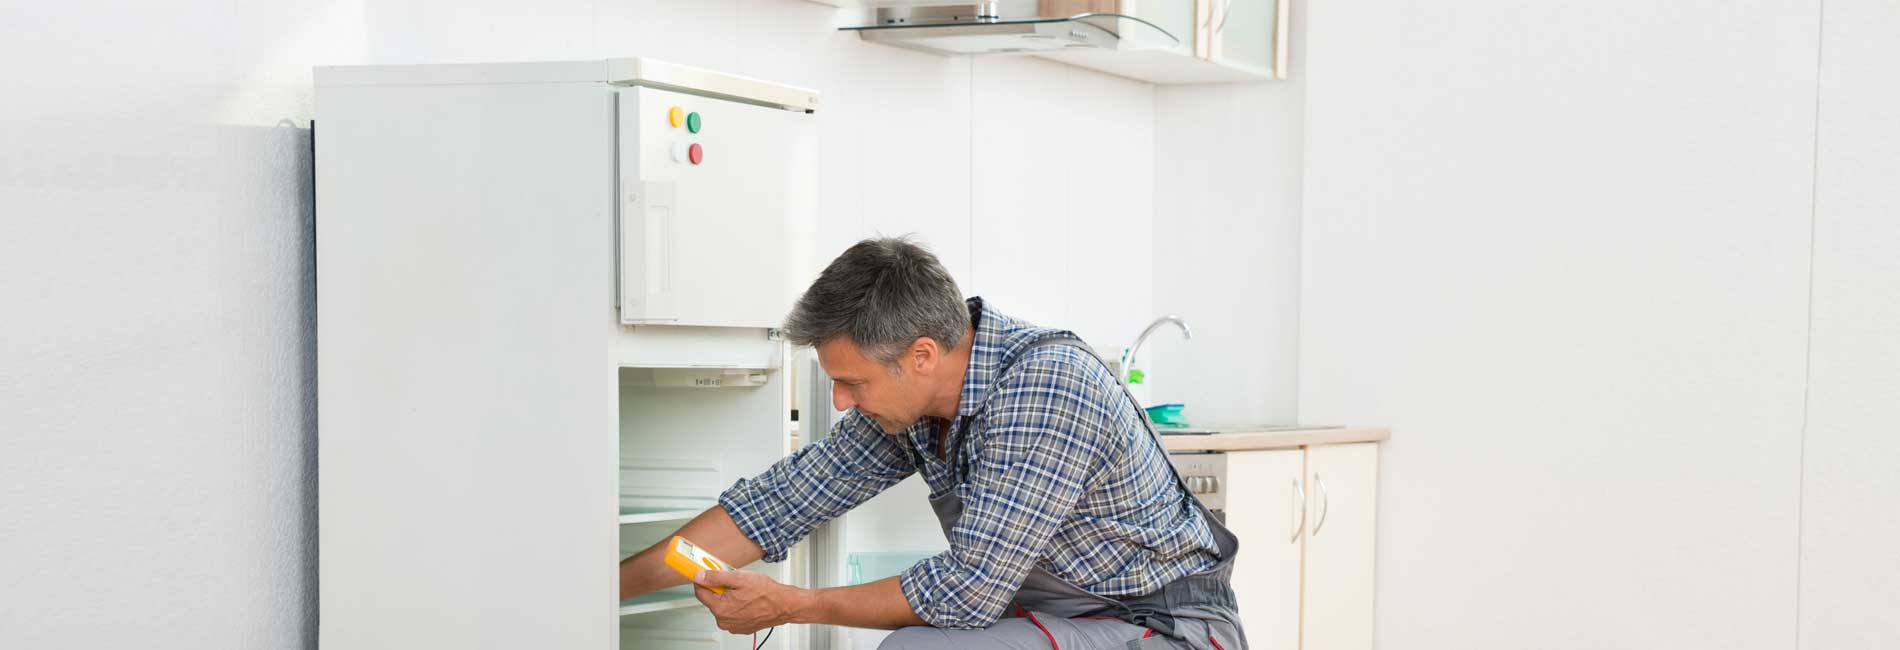 Kelvinator Fridge Repair in Alwarthirunagar